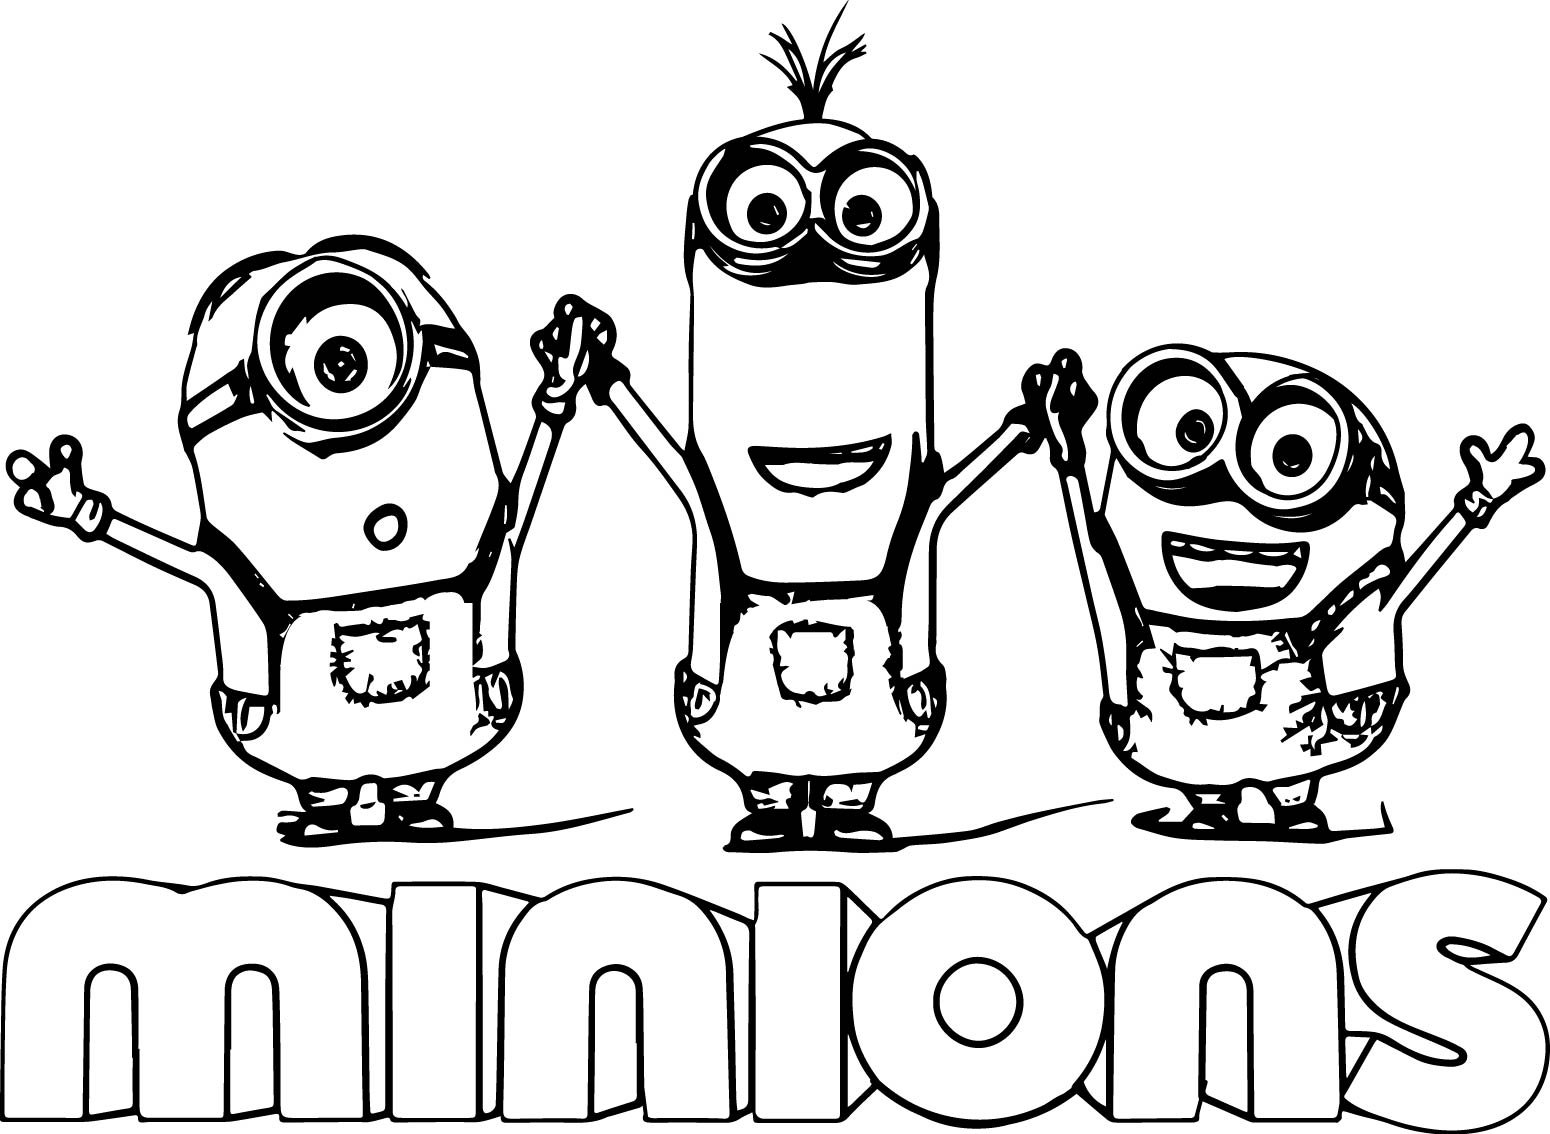 Minion Text Minions Backyard Bash Coloring Page Neo Coloring